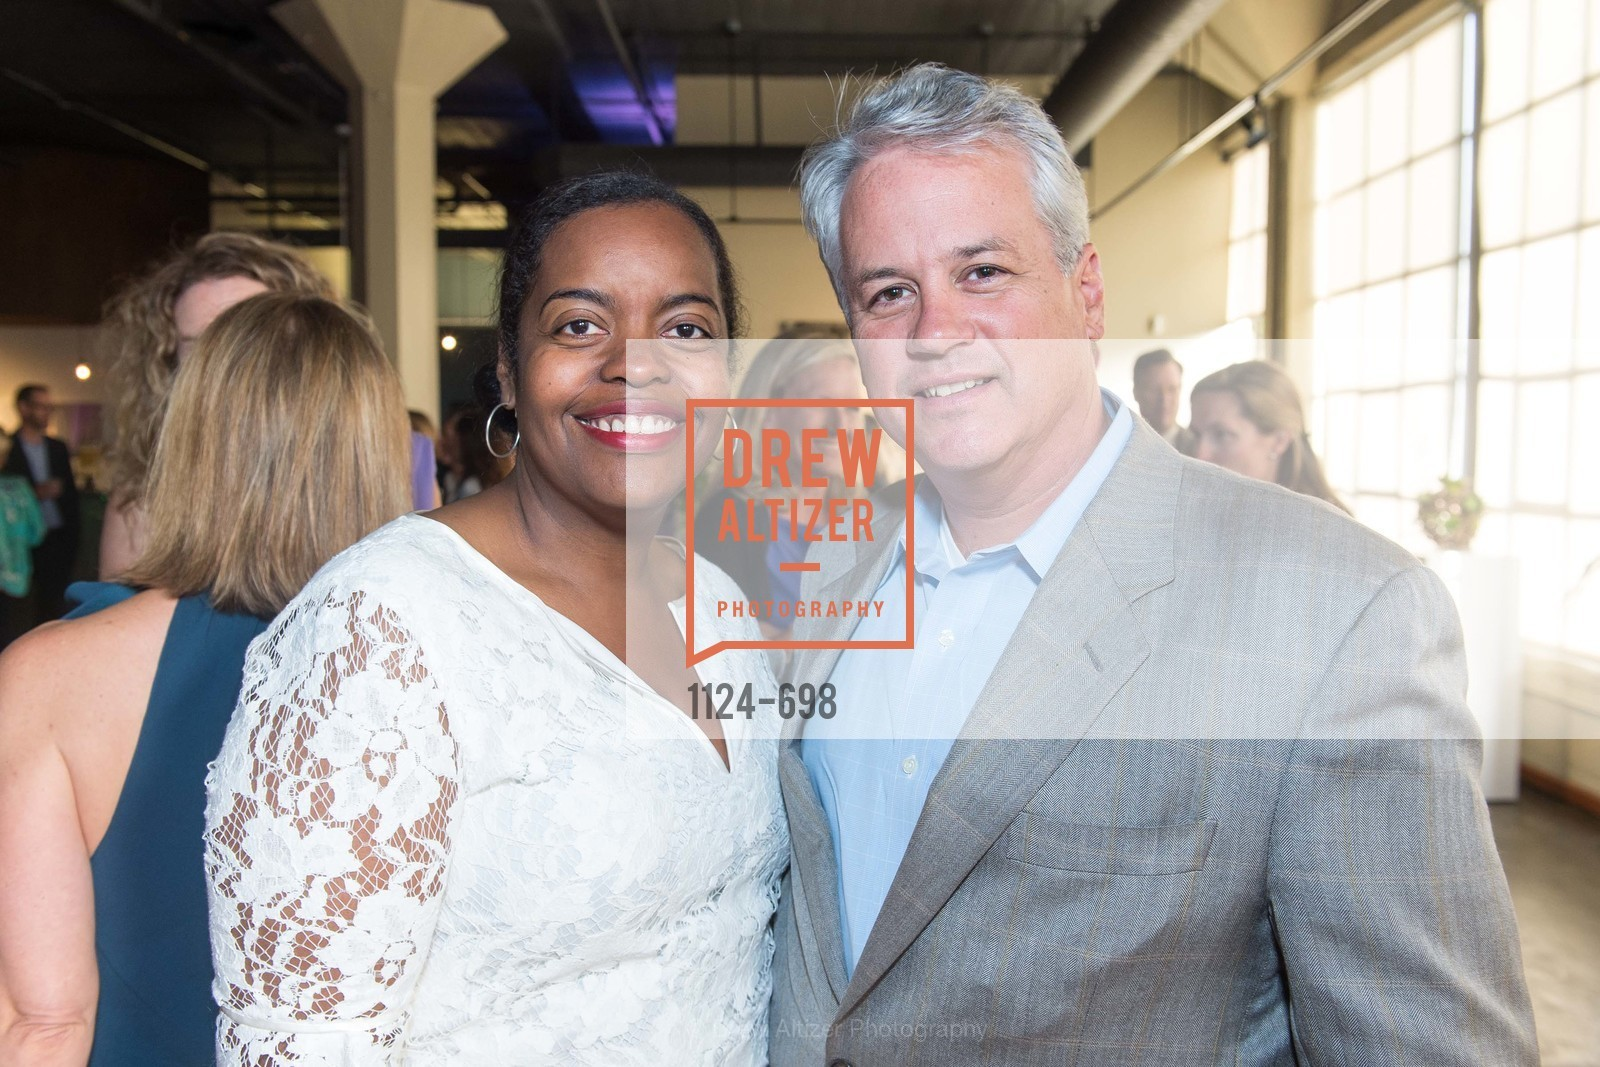 Chantel Walker, John McDonnell, EWG's 6th Annual Earth Dinner, US, May 5th, 2015,Drew Altizer, Drew Altizer Photography, full-service agency, private events, San Francisco photographer, photographer california